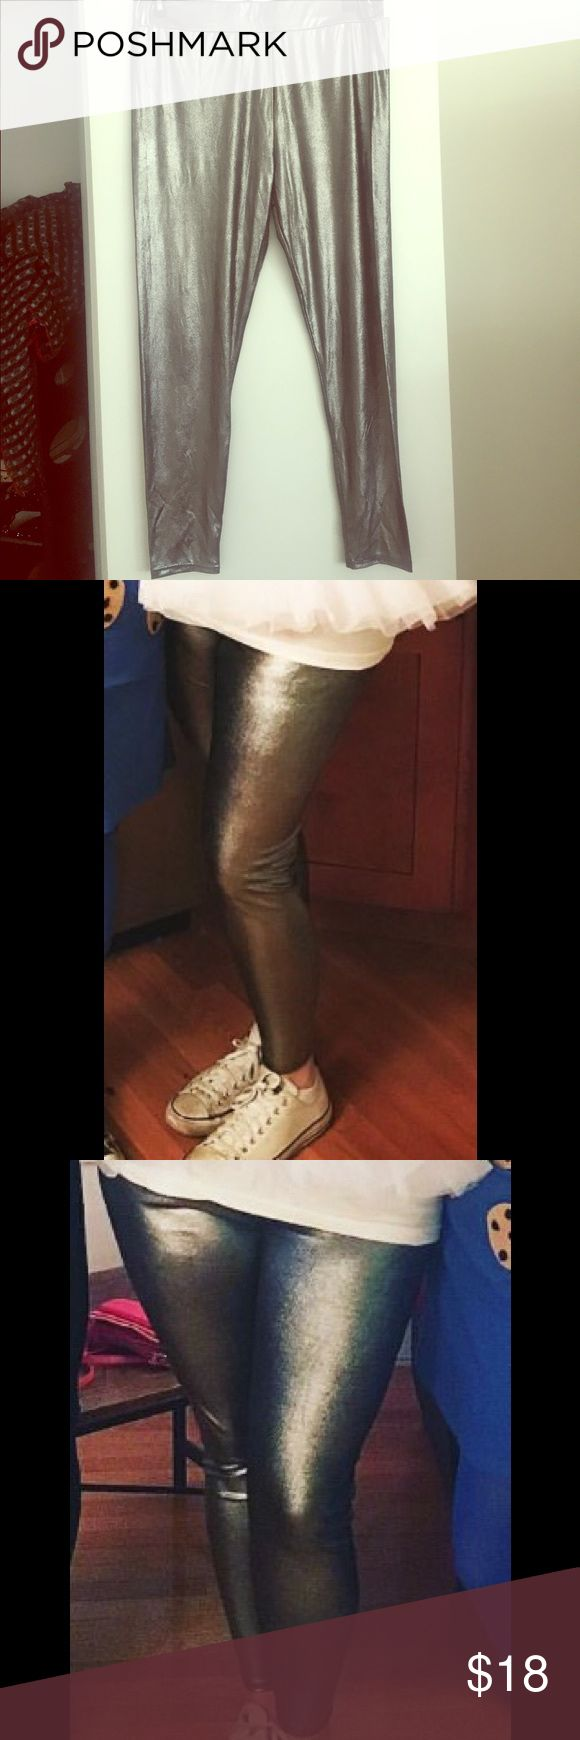 ASOS metallic leggings Wore these metallic silver leggings once for a Halloween costume. Love them but don't think I'll wear them again. ASOS size 18. ASOS Pants Leggings